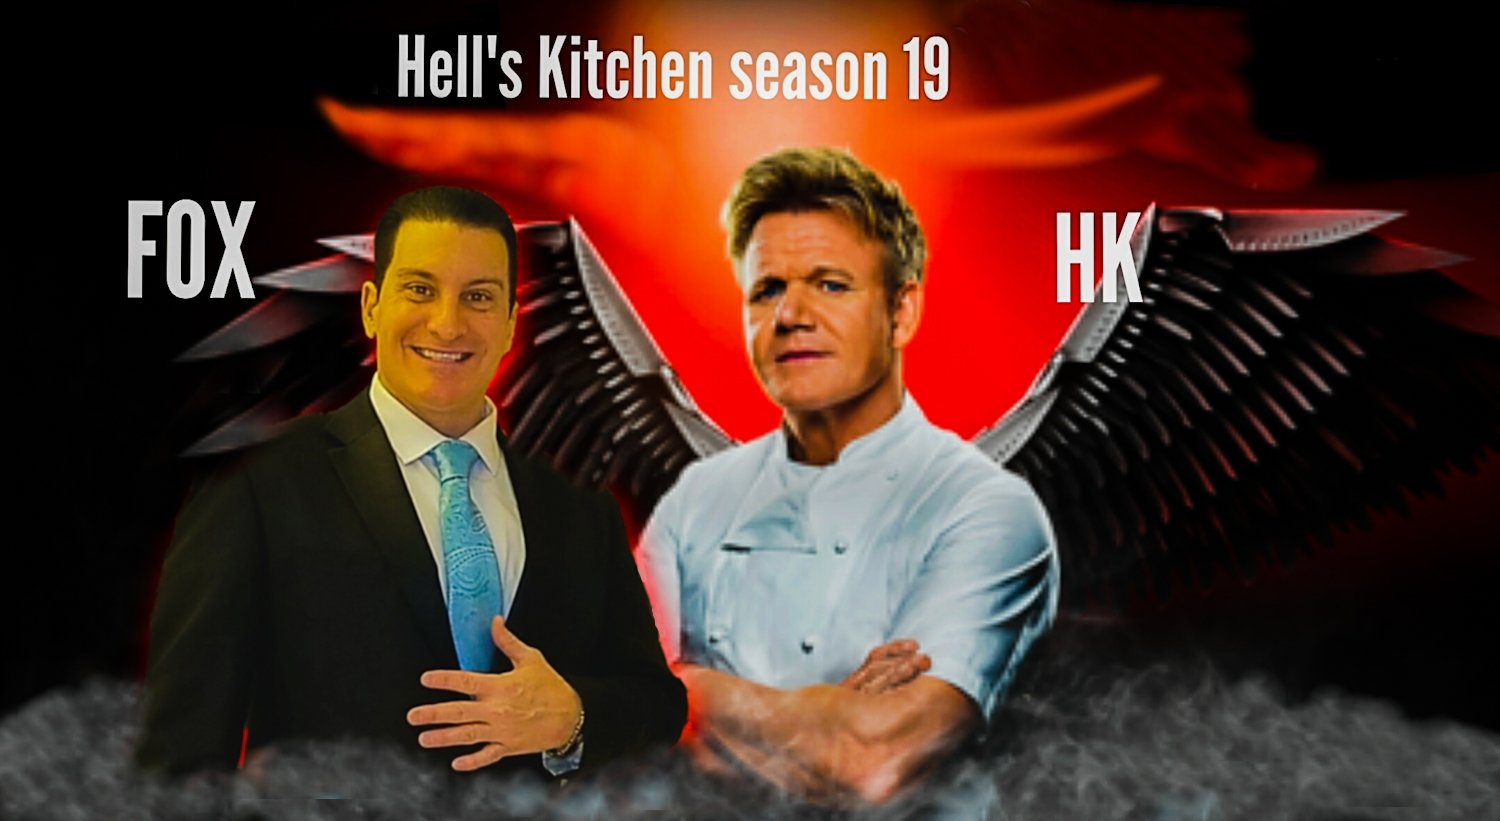 Next Season: Season 19 of Hell's Kitchen was announced on February 26, 2019, as FOX renewed it along with Season 20. Both seasons will take place at the Hell's Kitchen restaurant in Caesars Palace in Las Vegas.